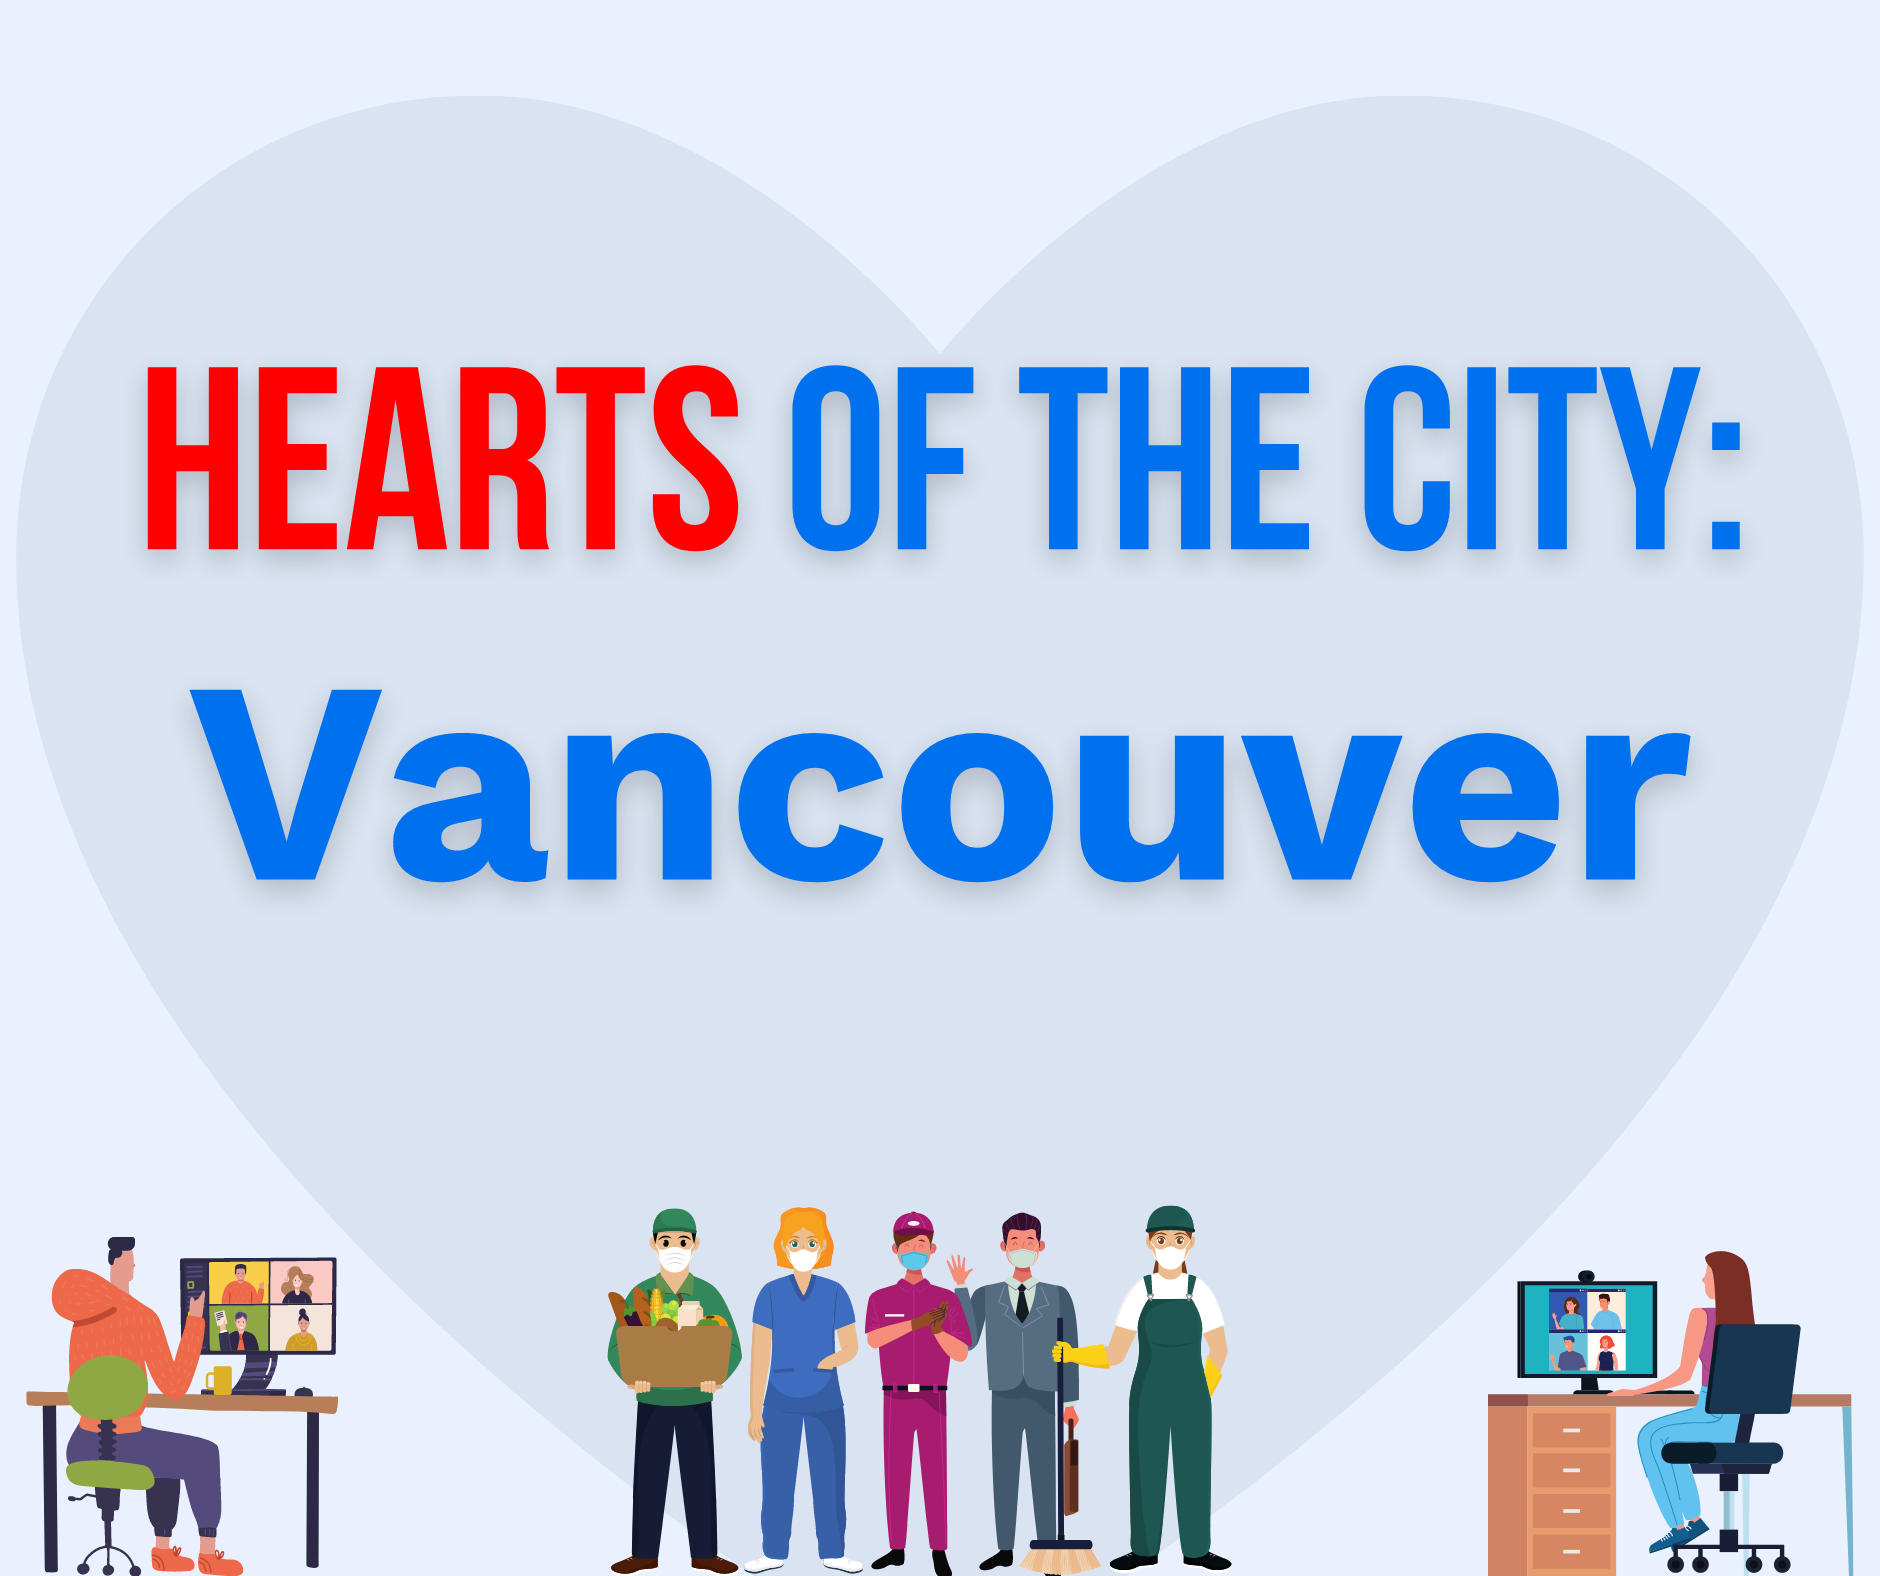 Light blue graphic design image with text: Hearts of the City: Vancouver and design images of essential workers